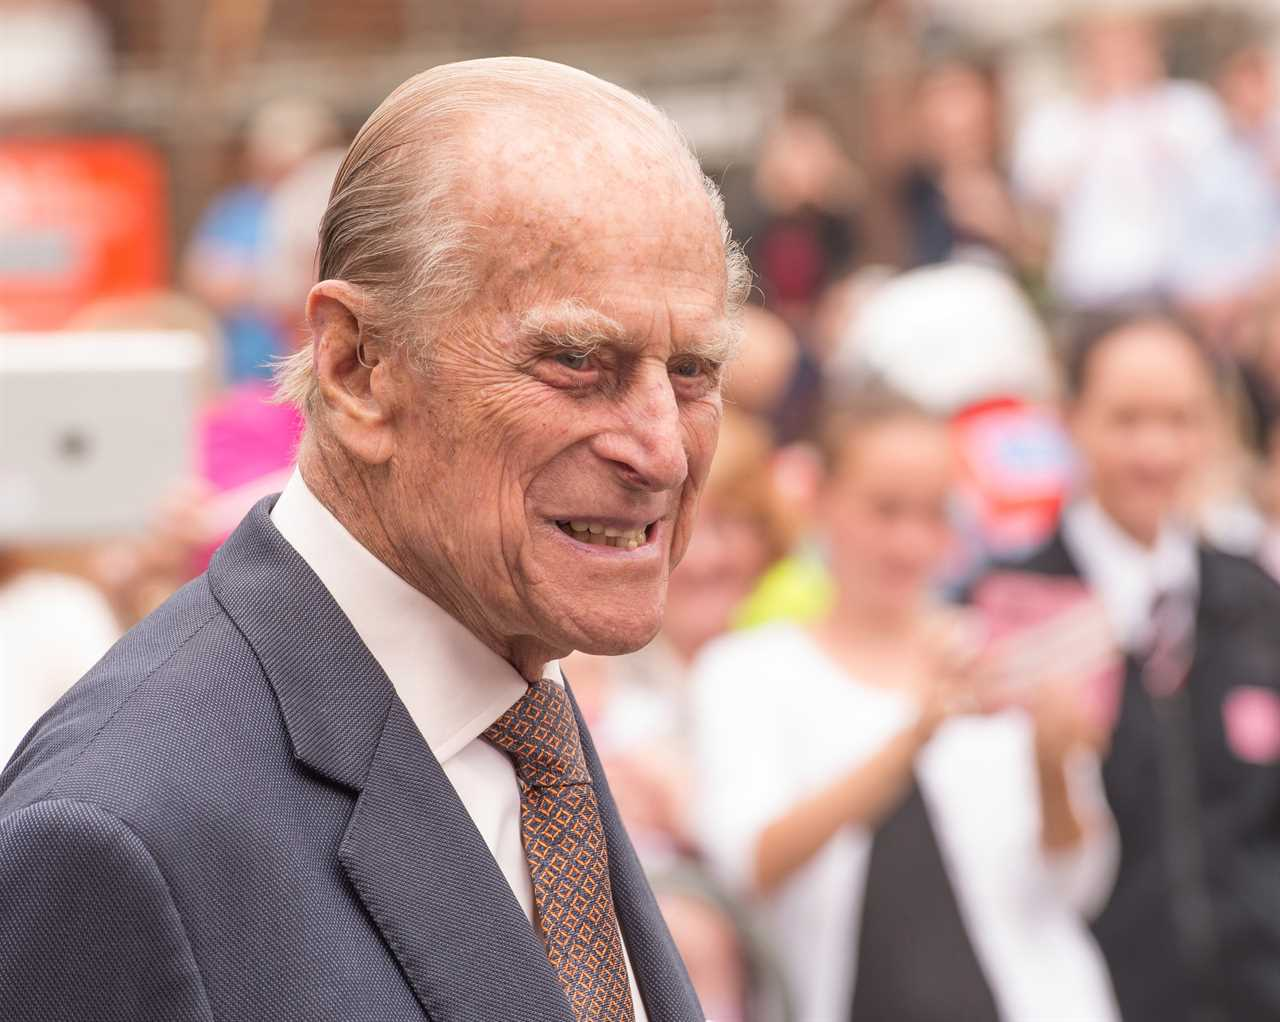 Prince Philip's funeral is taking place within the grounds of Windsor Castle